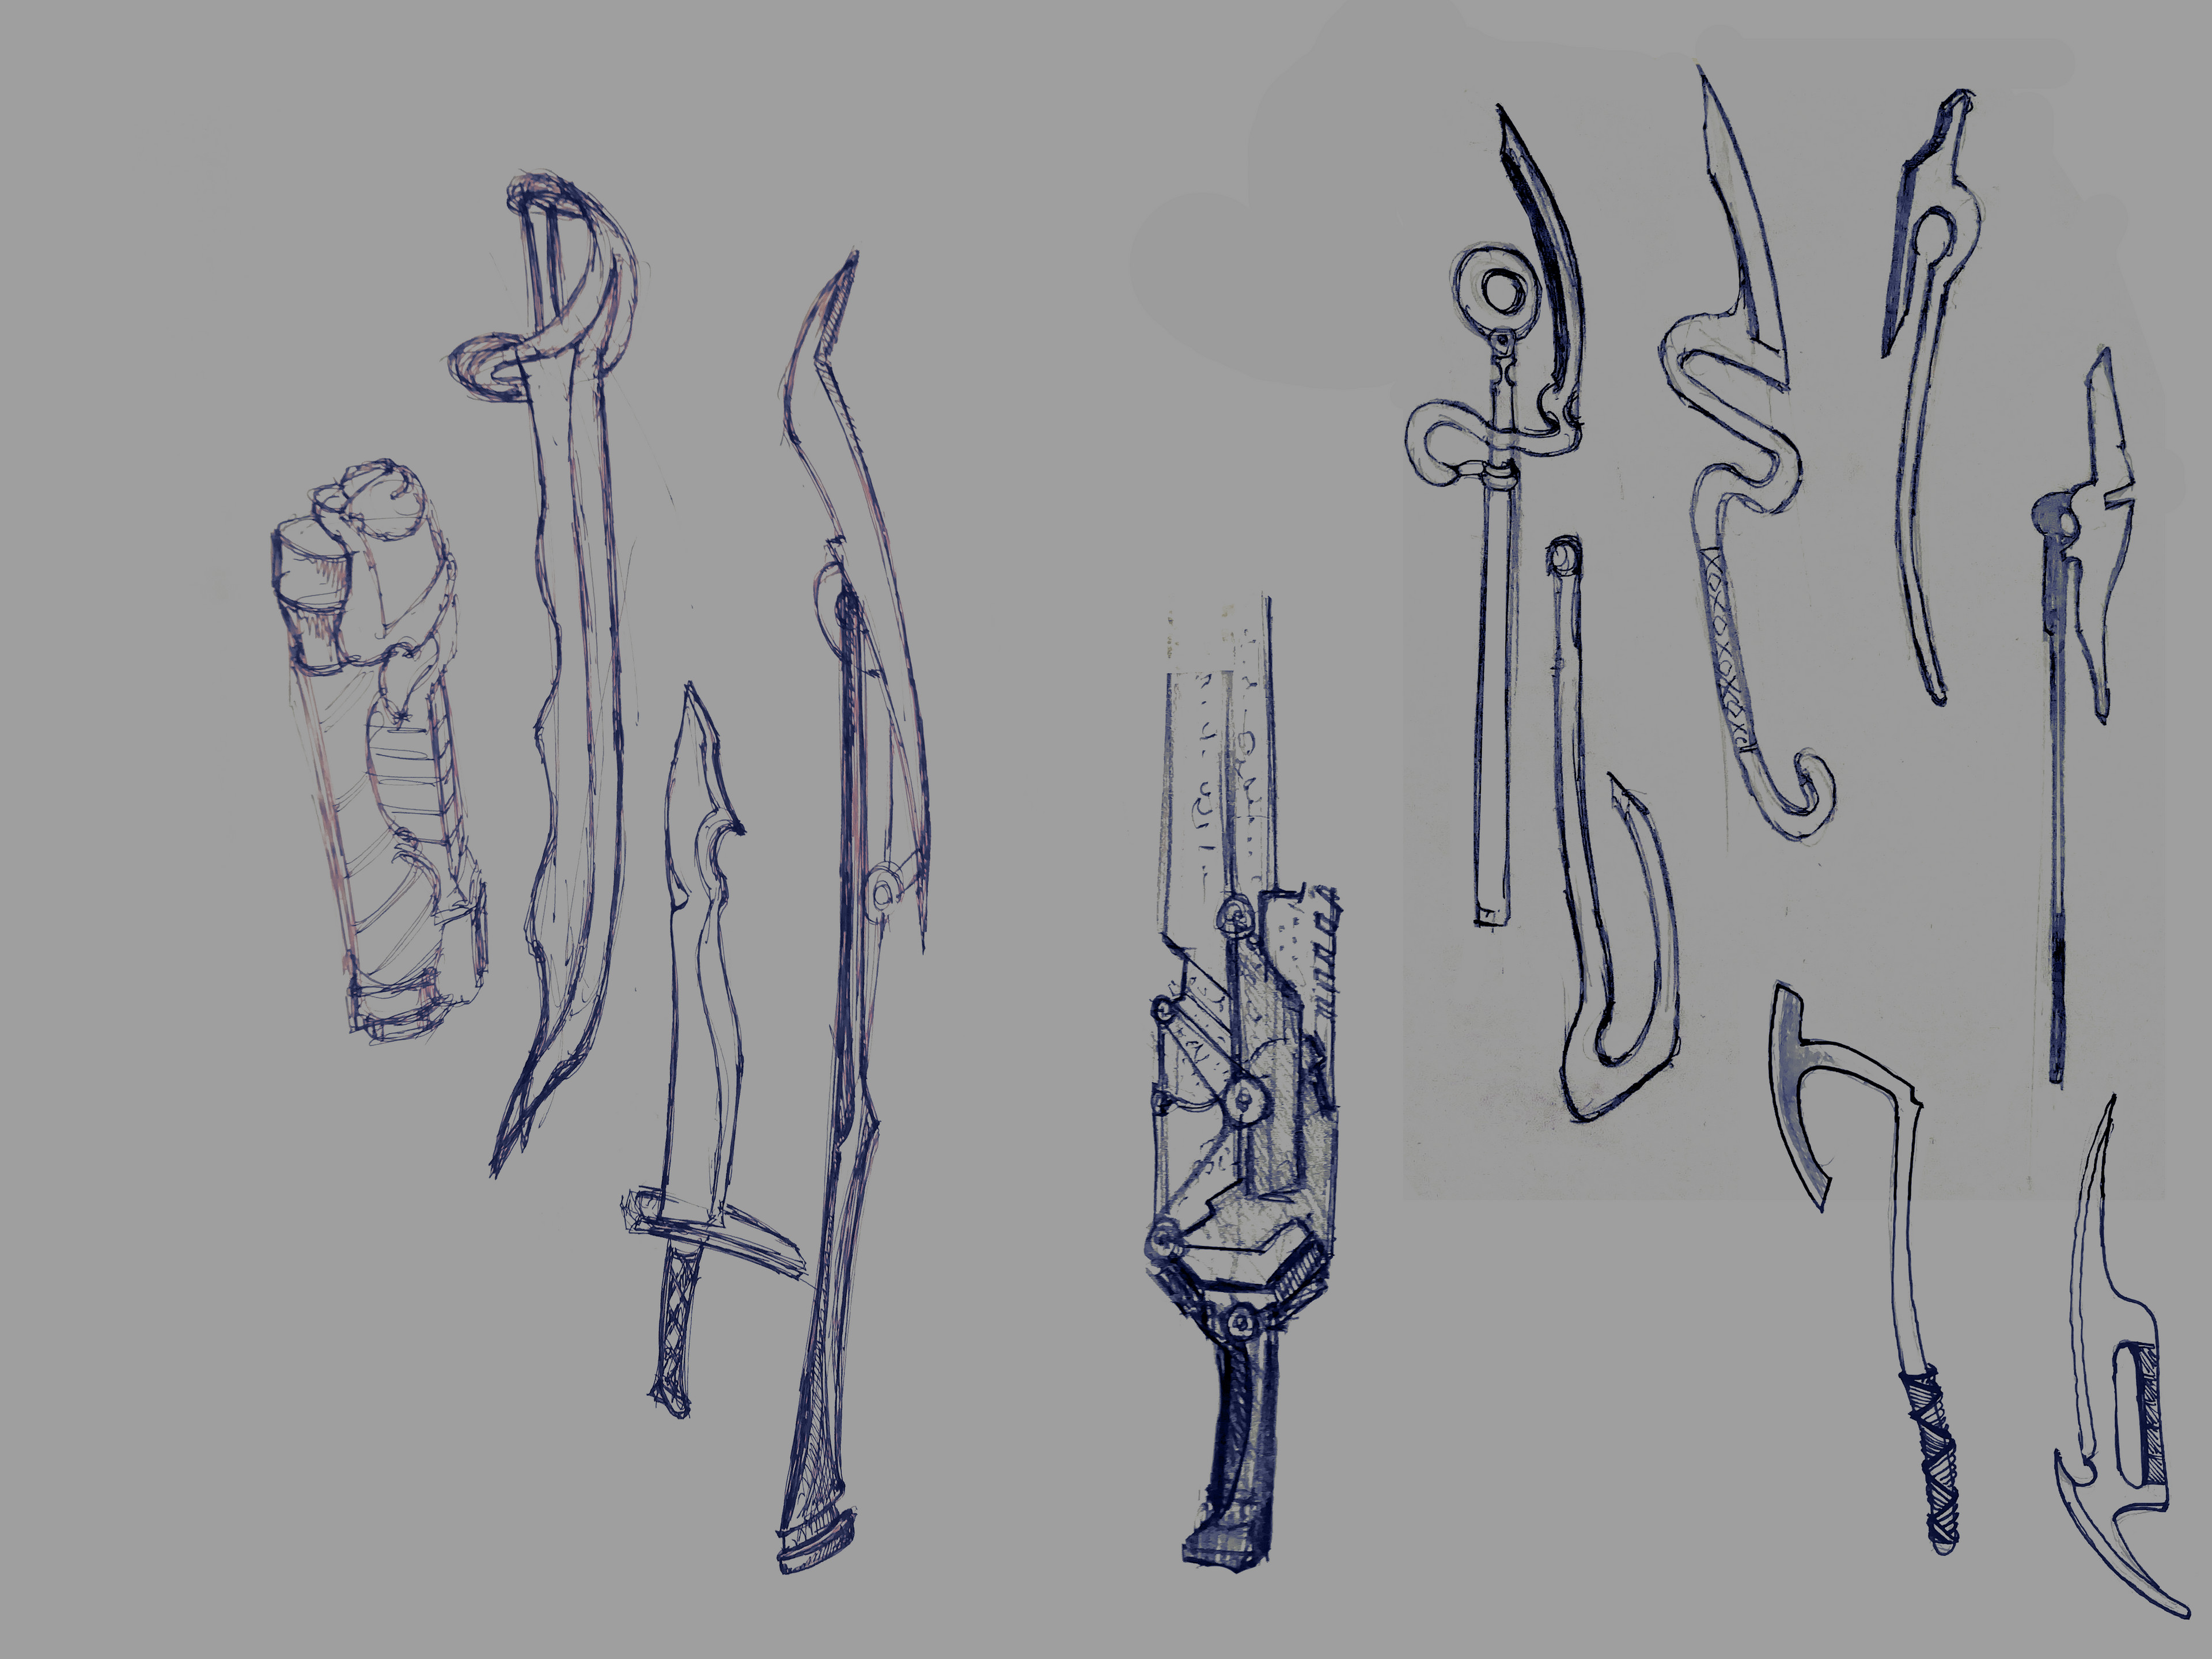 Initial pencil sketches can be seen on the right. I'm not a concept artist, but when I practice drawing, I tend to doodle all sorts of shapes.